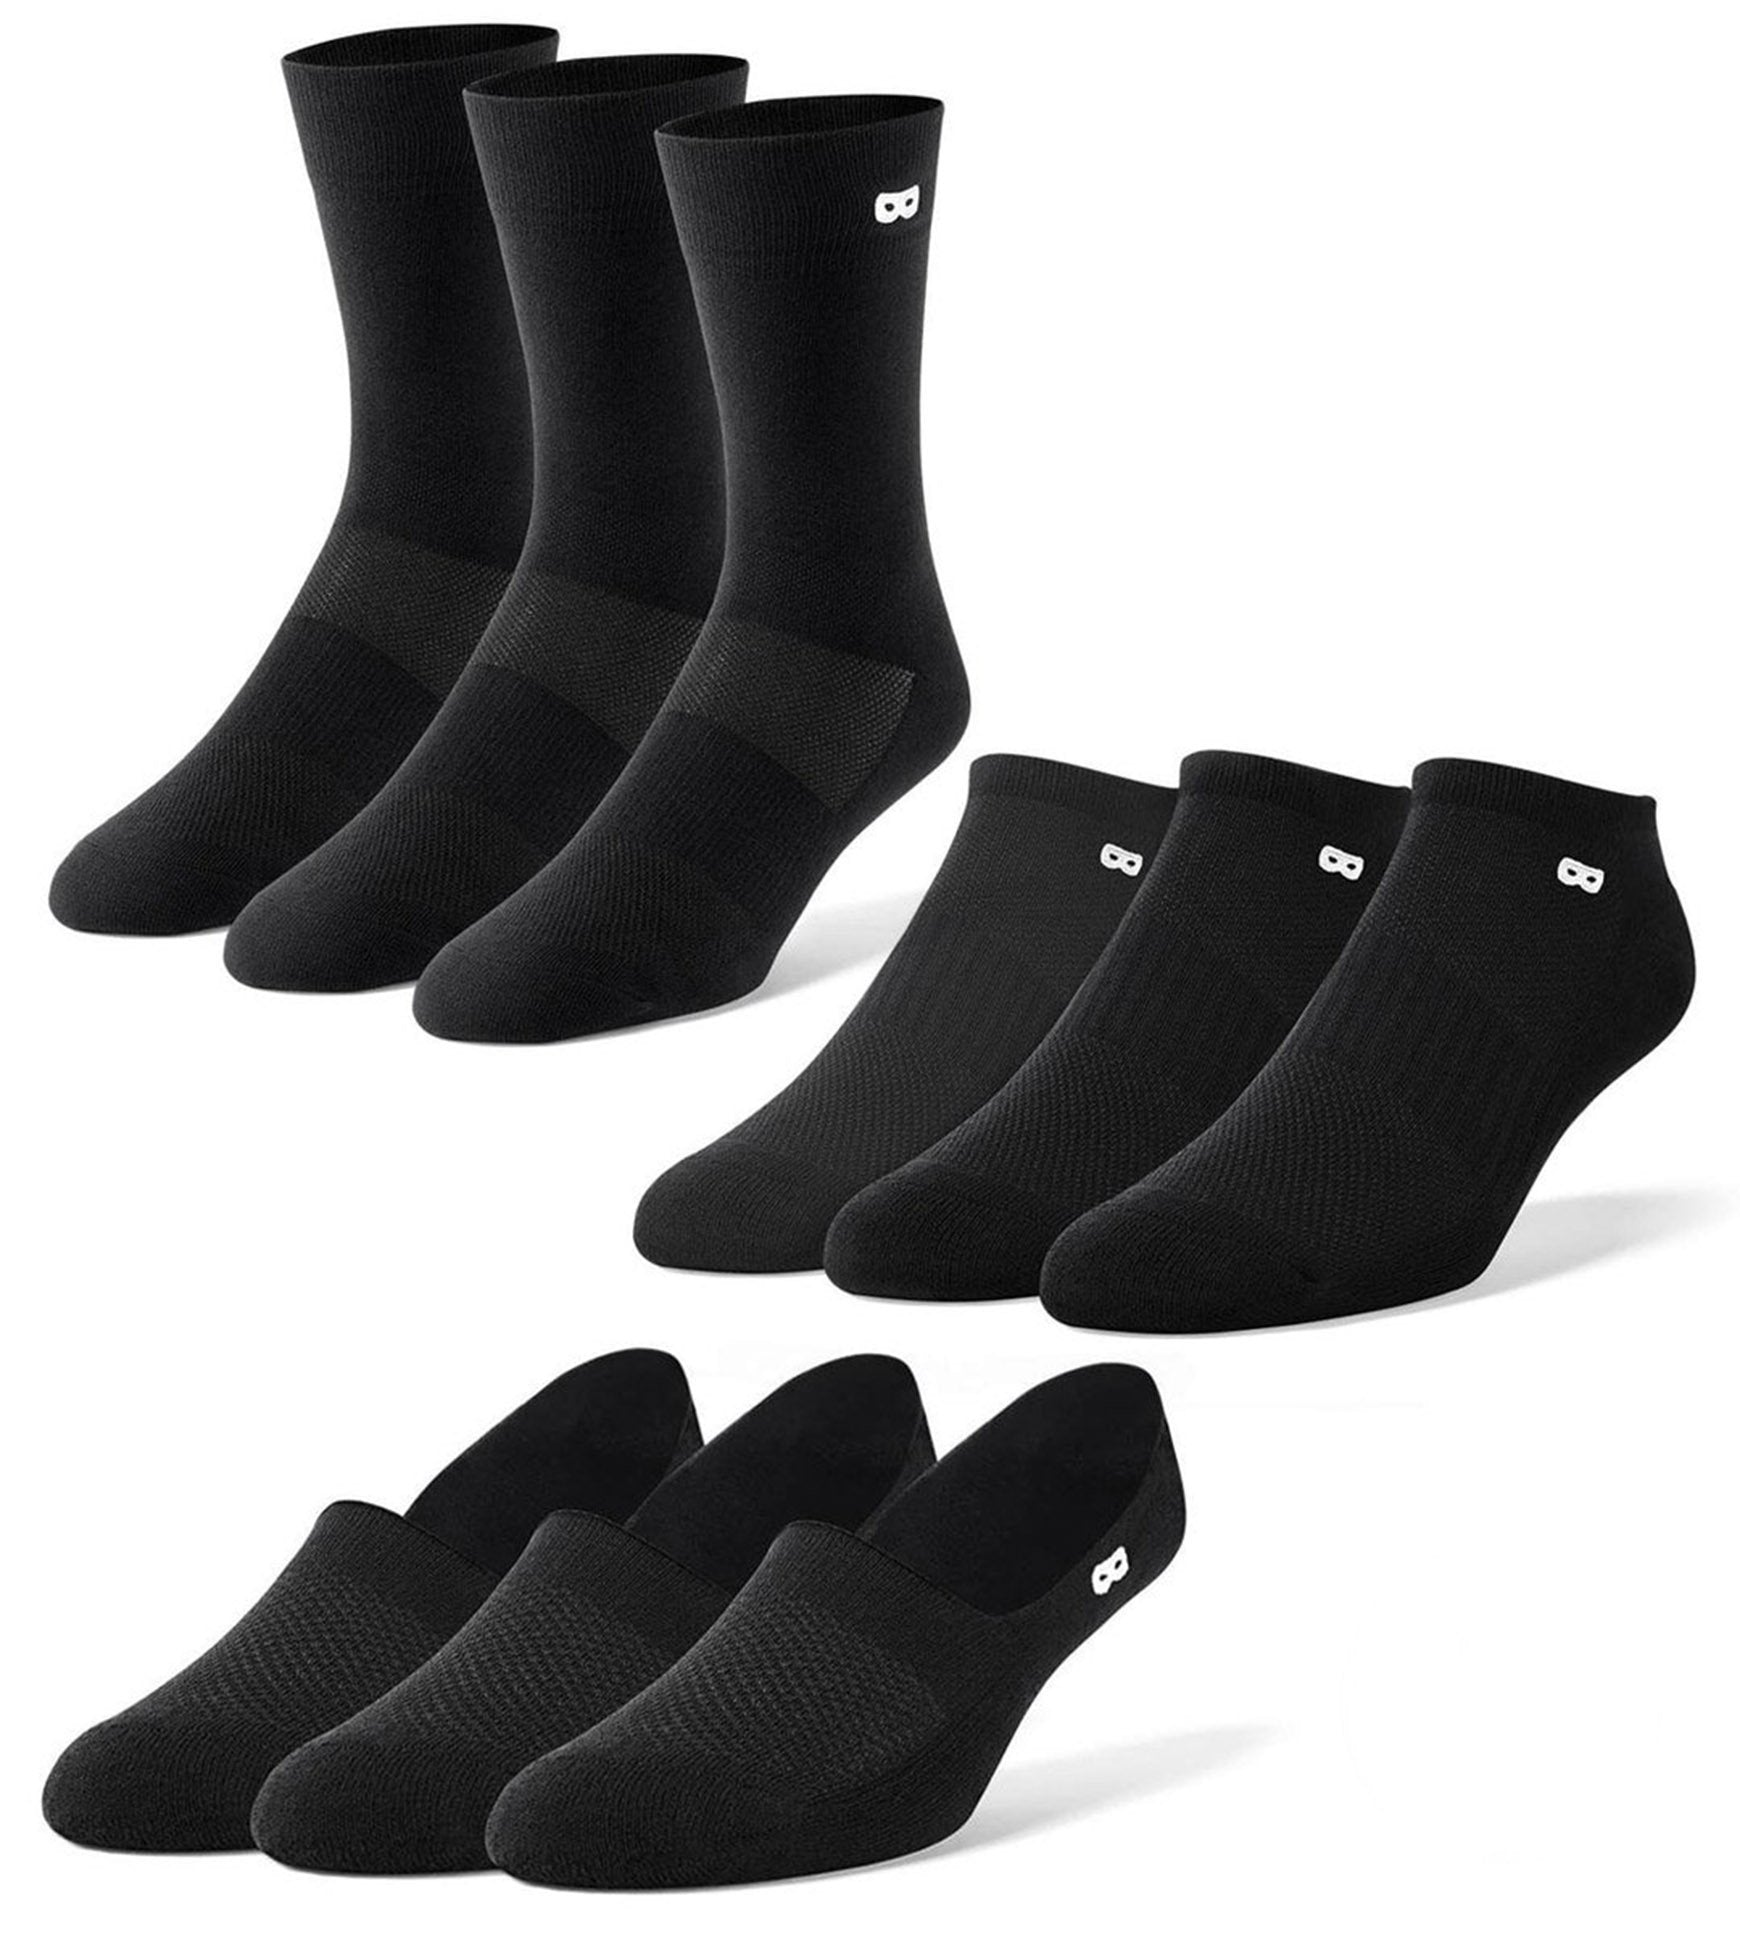 Men's Mega Blackout Socks 9 Pack